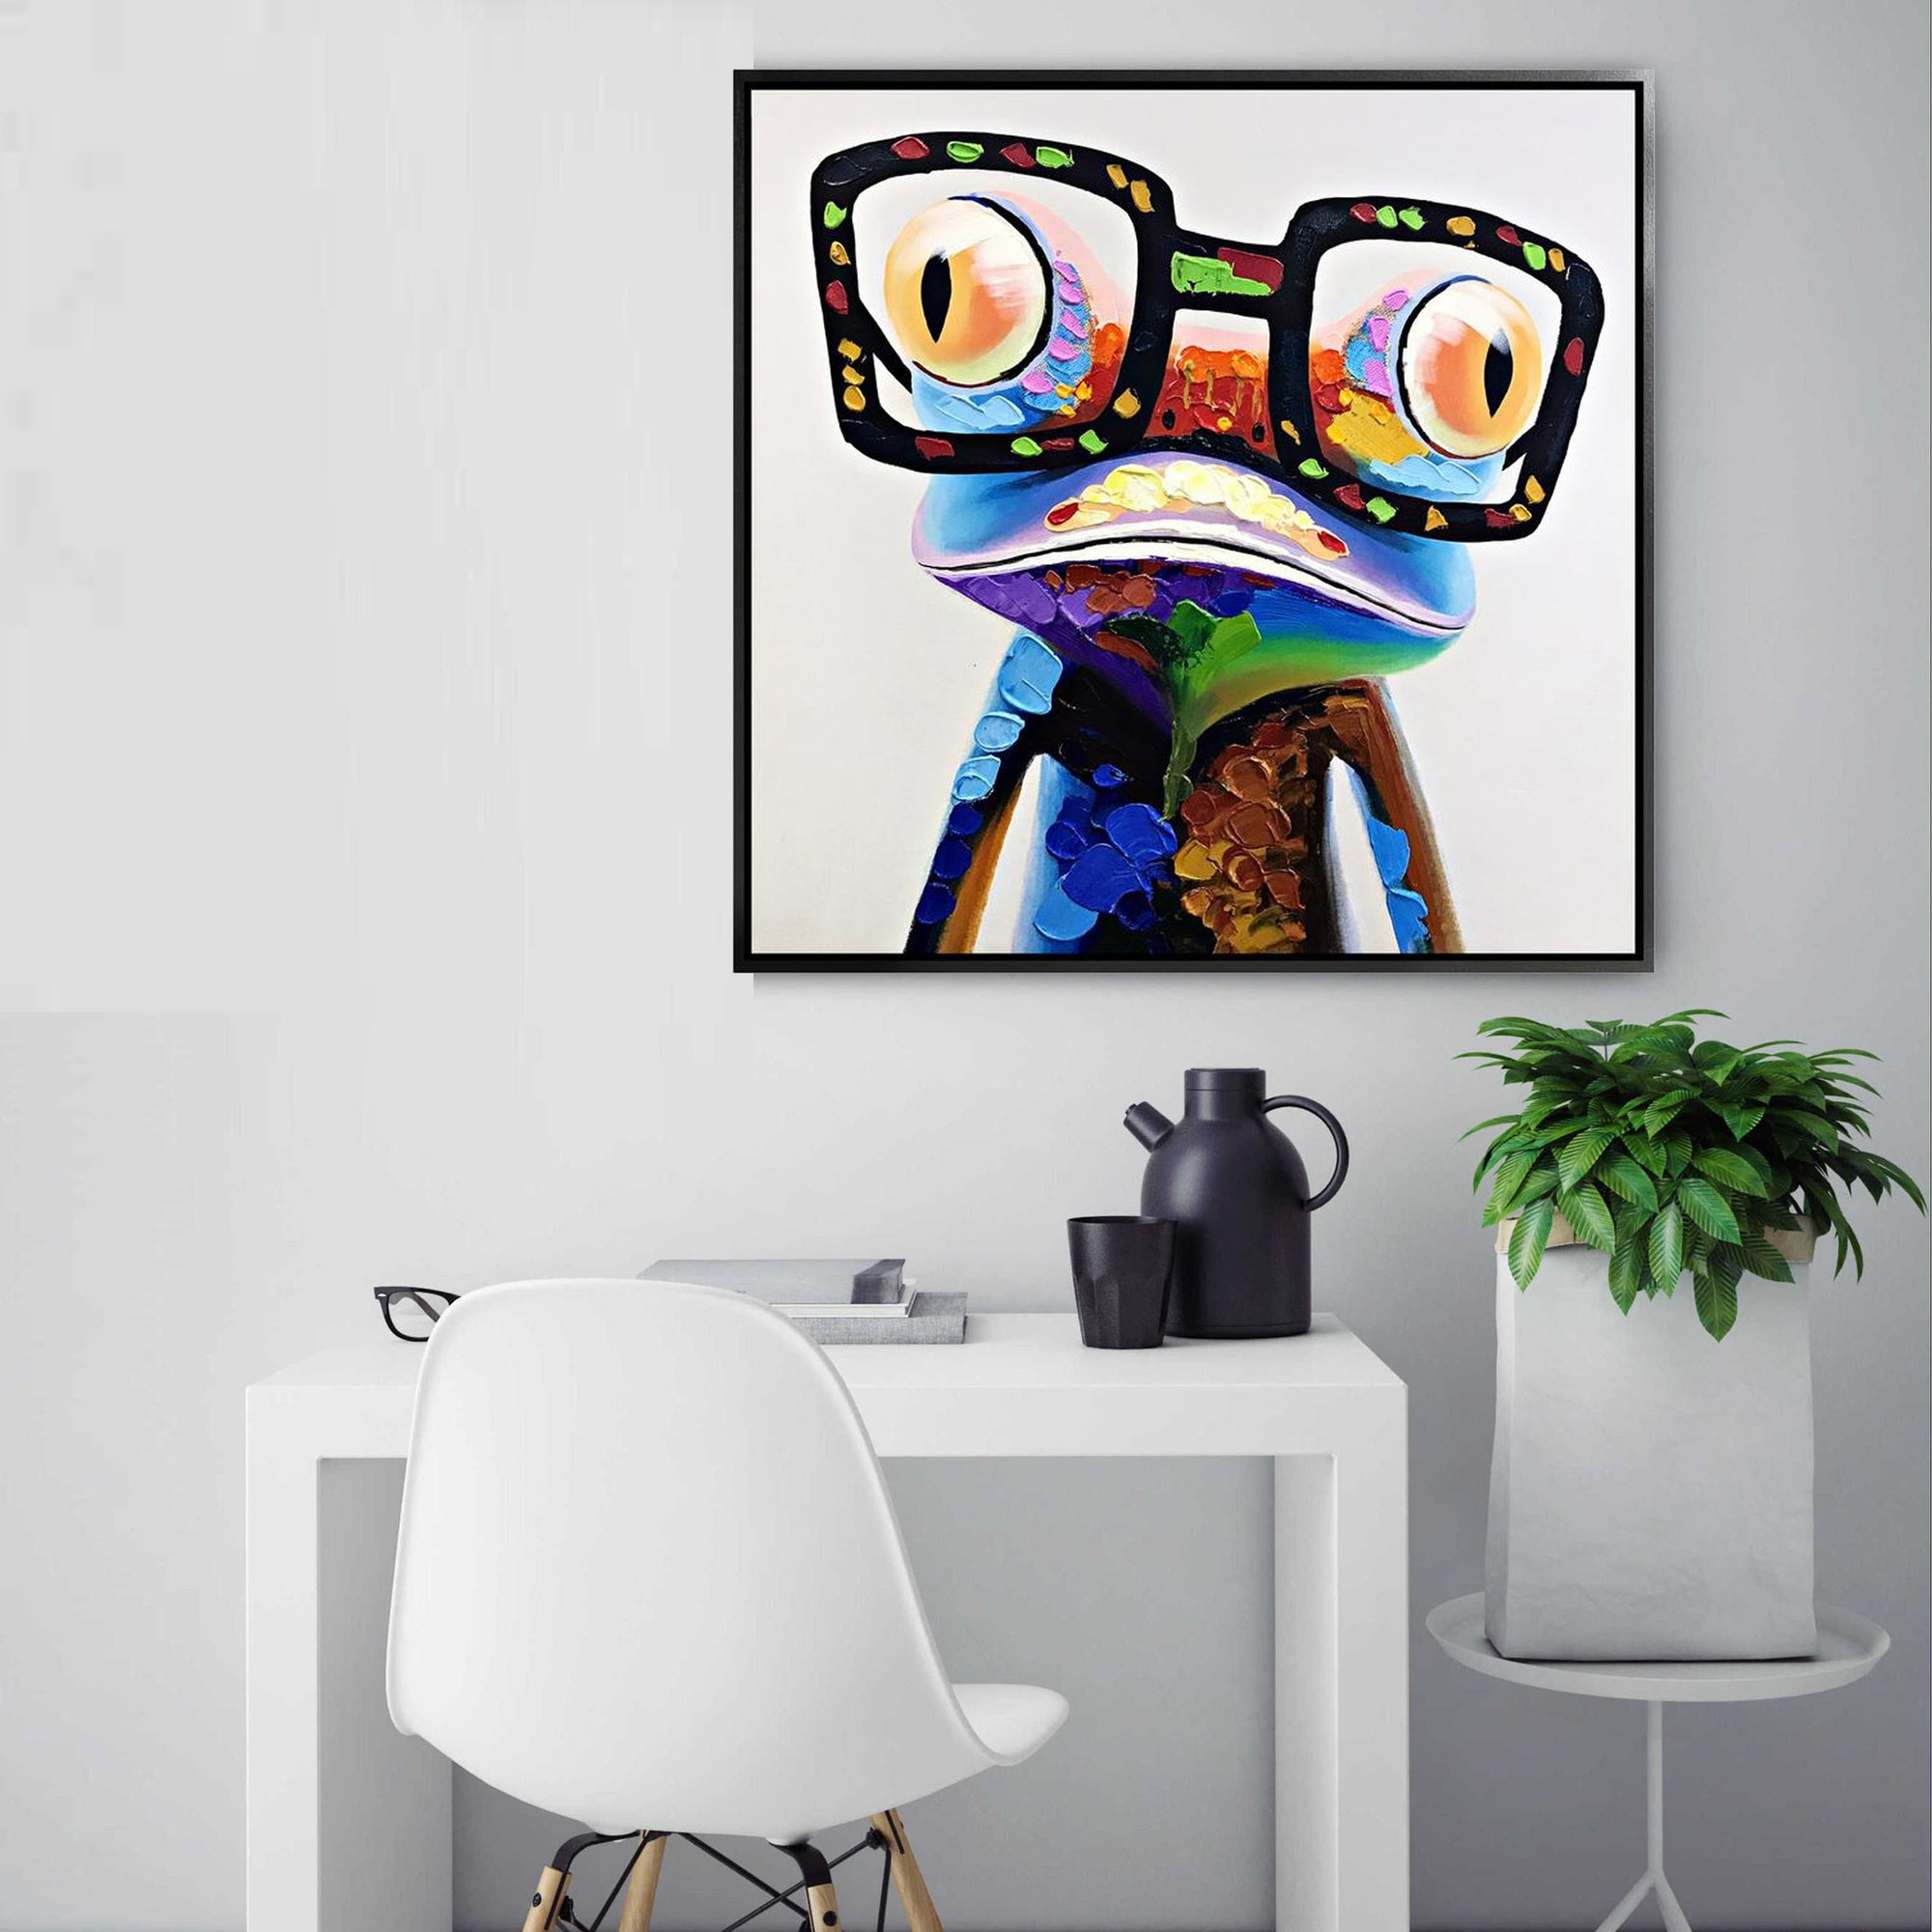 Painting - Handpainted Art Painting With Aluminum Frame 65x65cm PNF010S